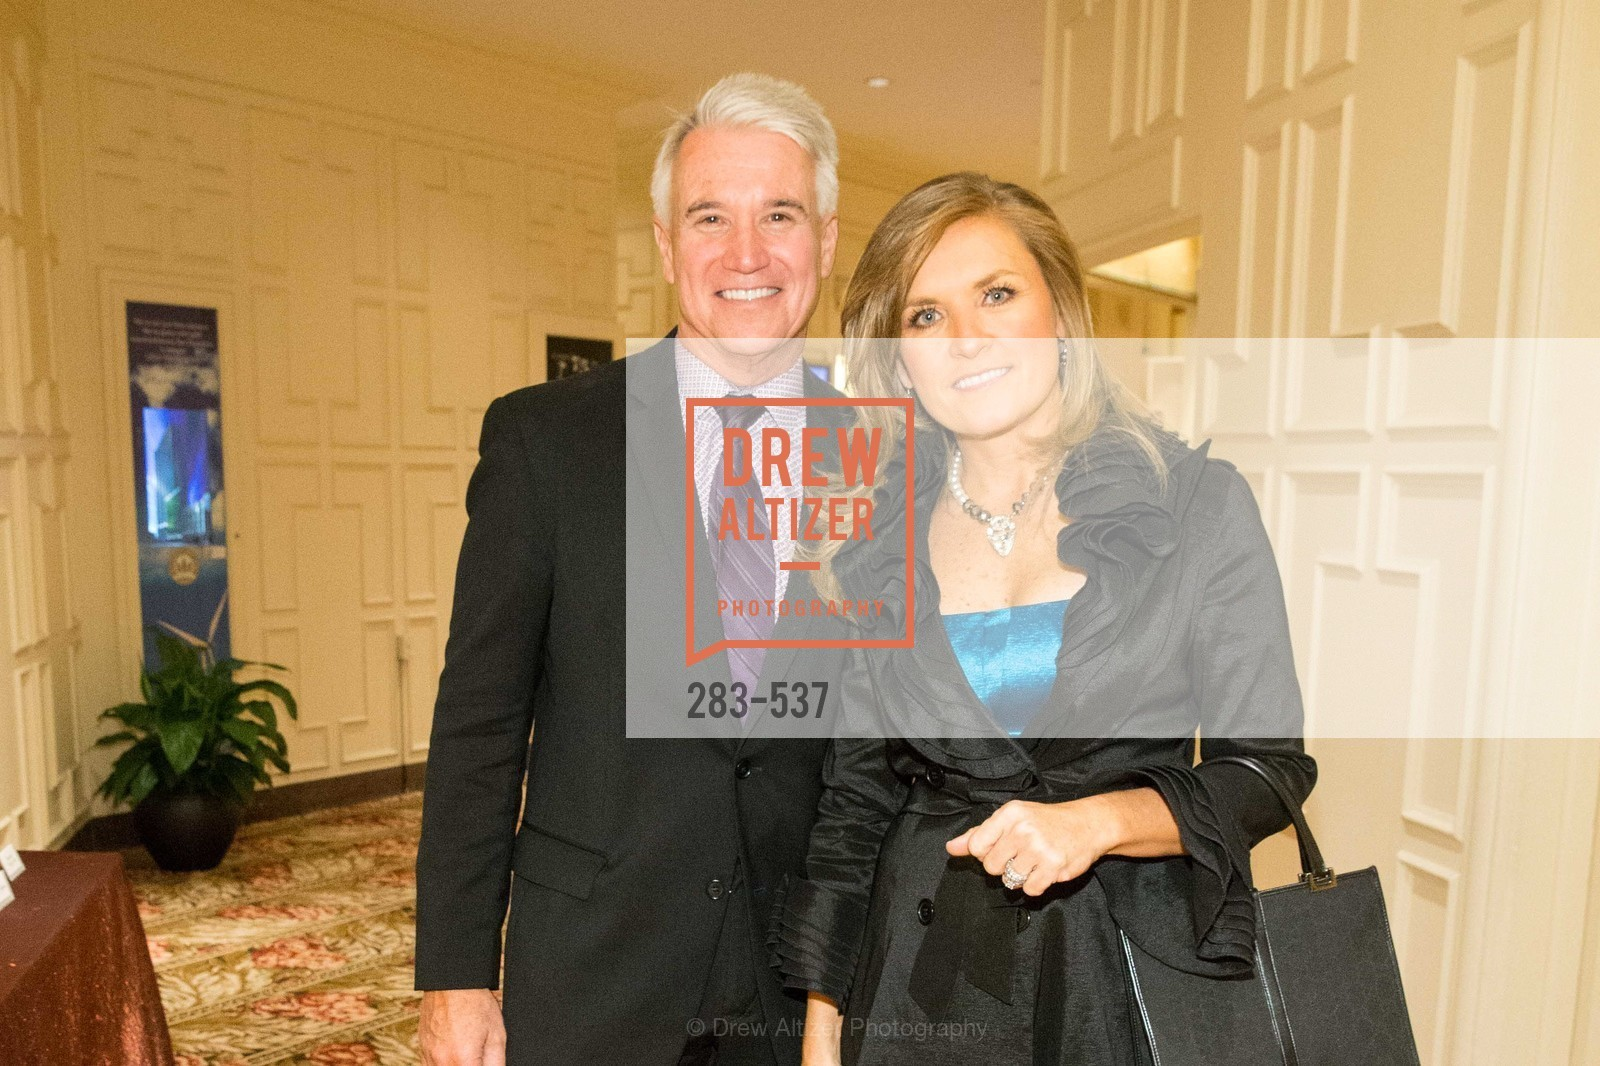 George Gascon, Fabiola Gascon, TOP OF THE MARK'S 75TH Anniversary Party, US, November 6th, 2014,Drew Altizer, Drew Altizer Photography, full-service agency, private events, San Francisco photographer, photographer california